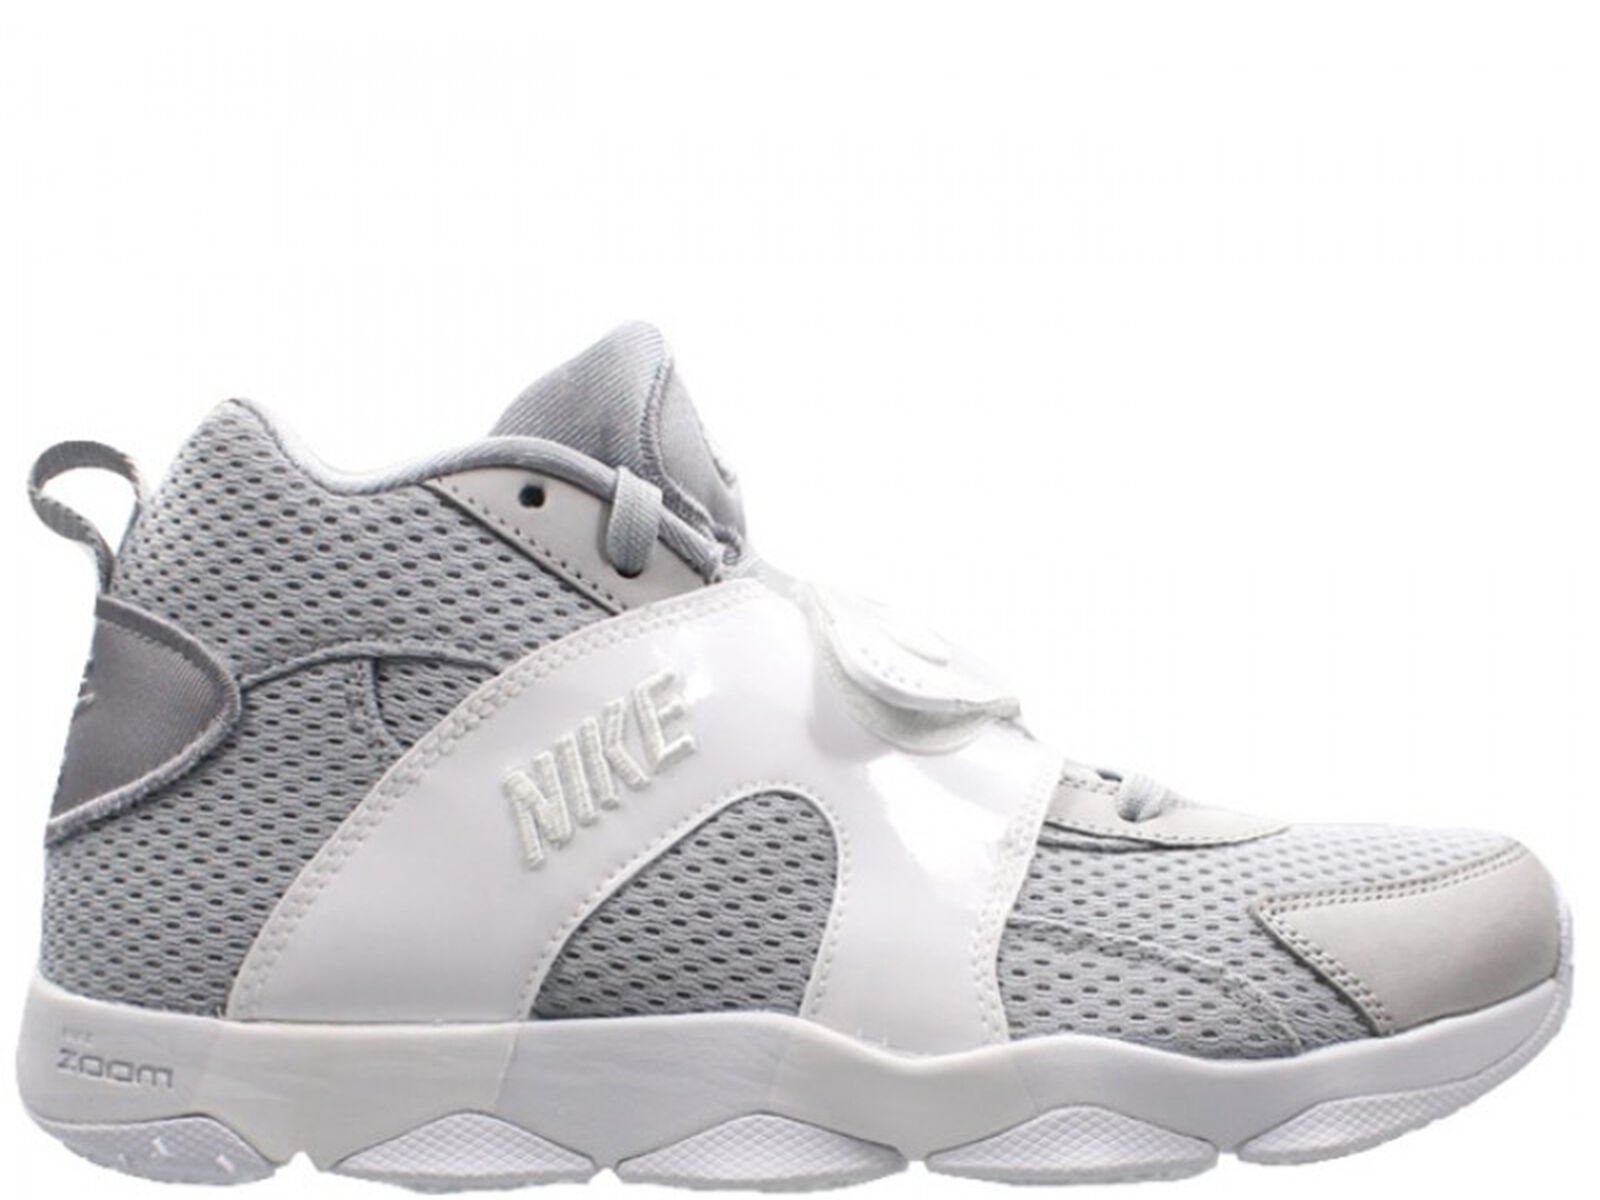 Brand New Nike Air Zoom Veer Men's Athletic Fashion Sneakers Price reduction  Comfortable and good-looking